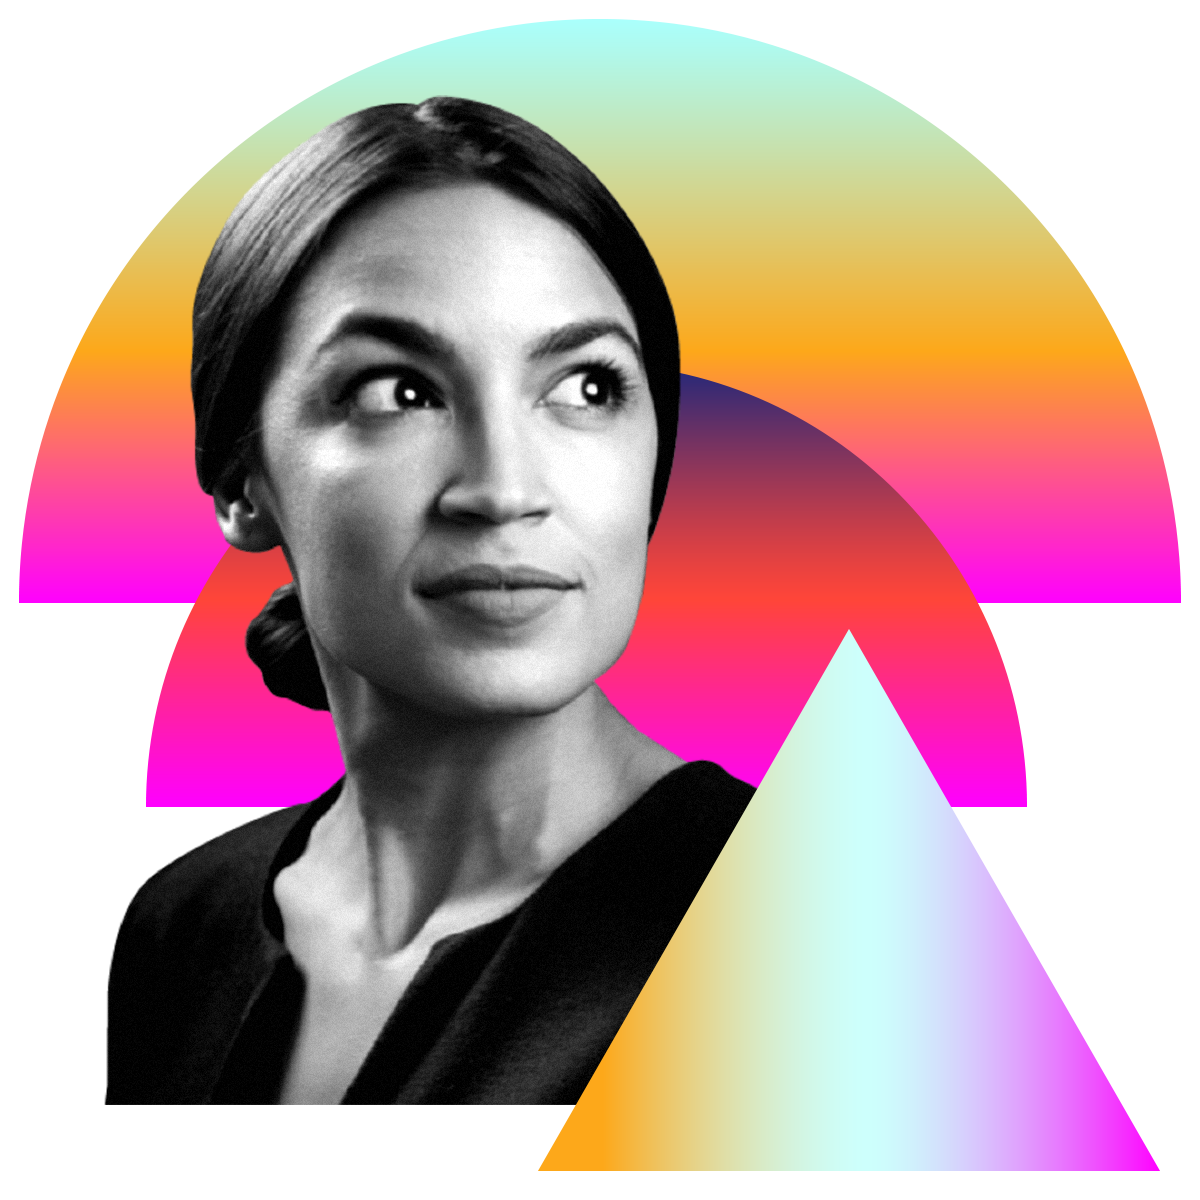 Photo illustration of Alexandria Ocasio-Cortez in black and white surrounded by colored gradients